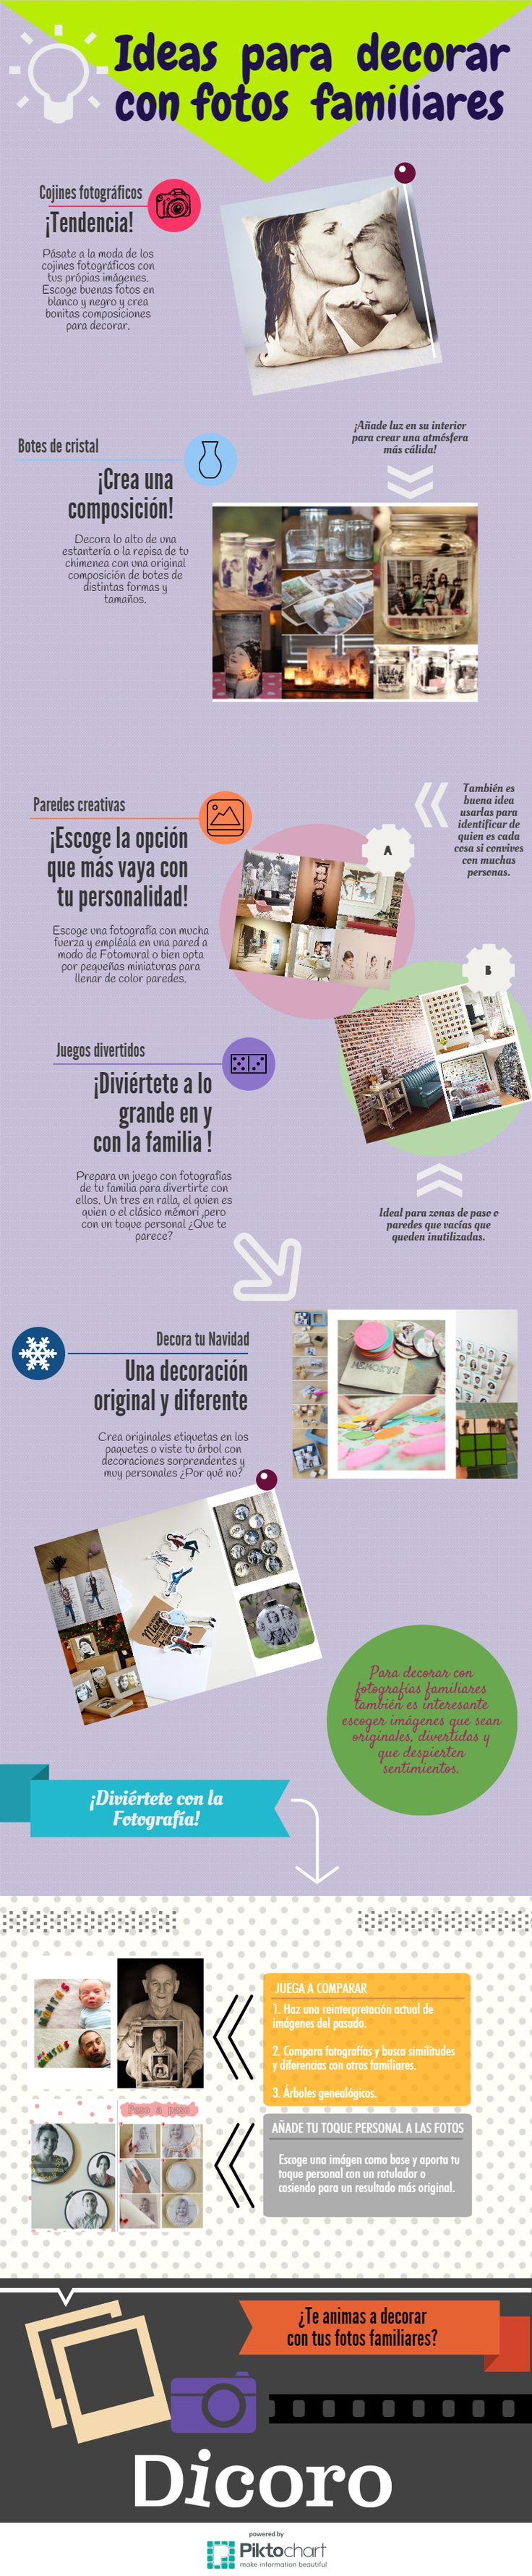 brillantes ideas para decorar con fotos familiares